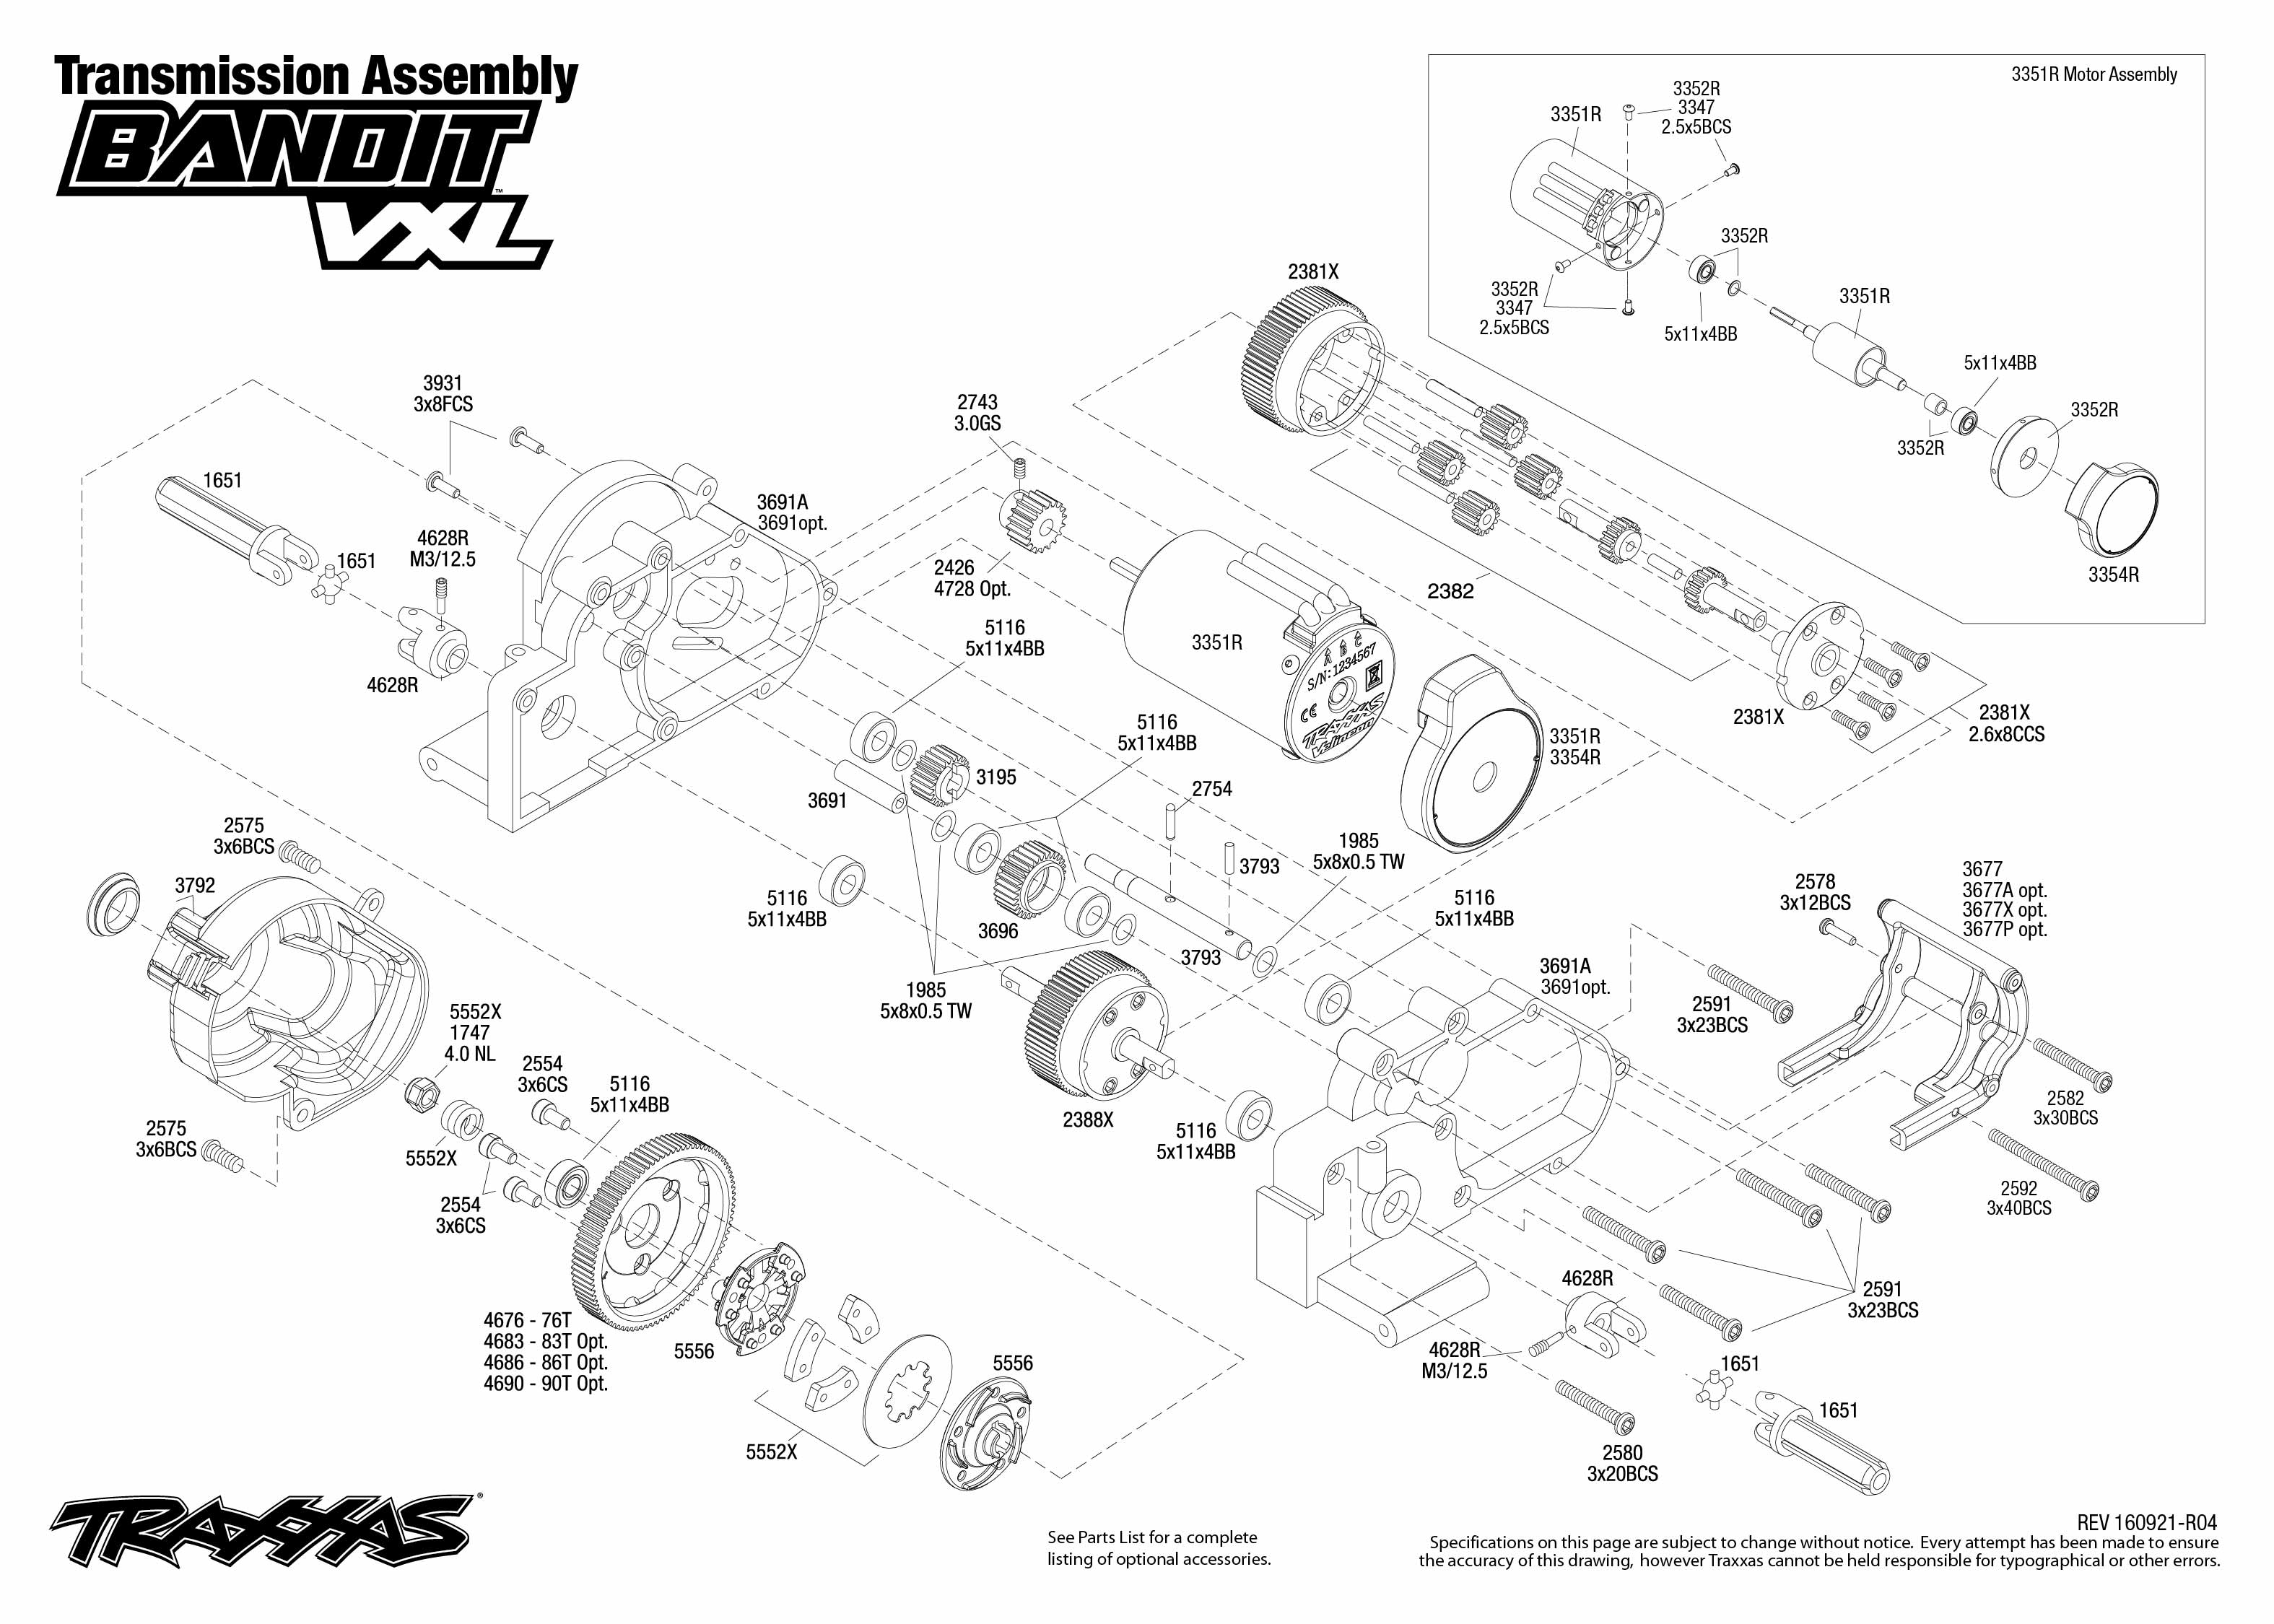 Outstanding Traxxas Stede 4x4 Parts Diagram Ideas - Best Image ...